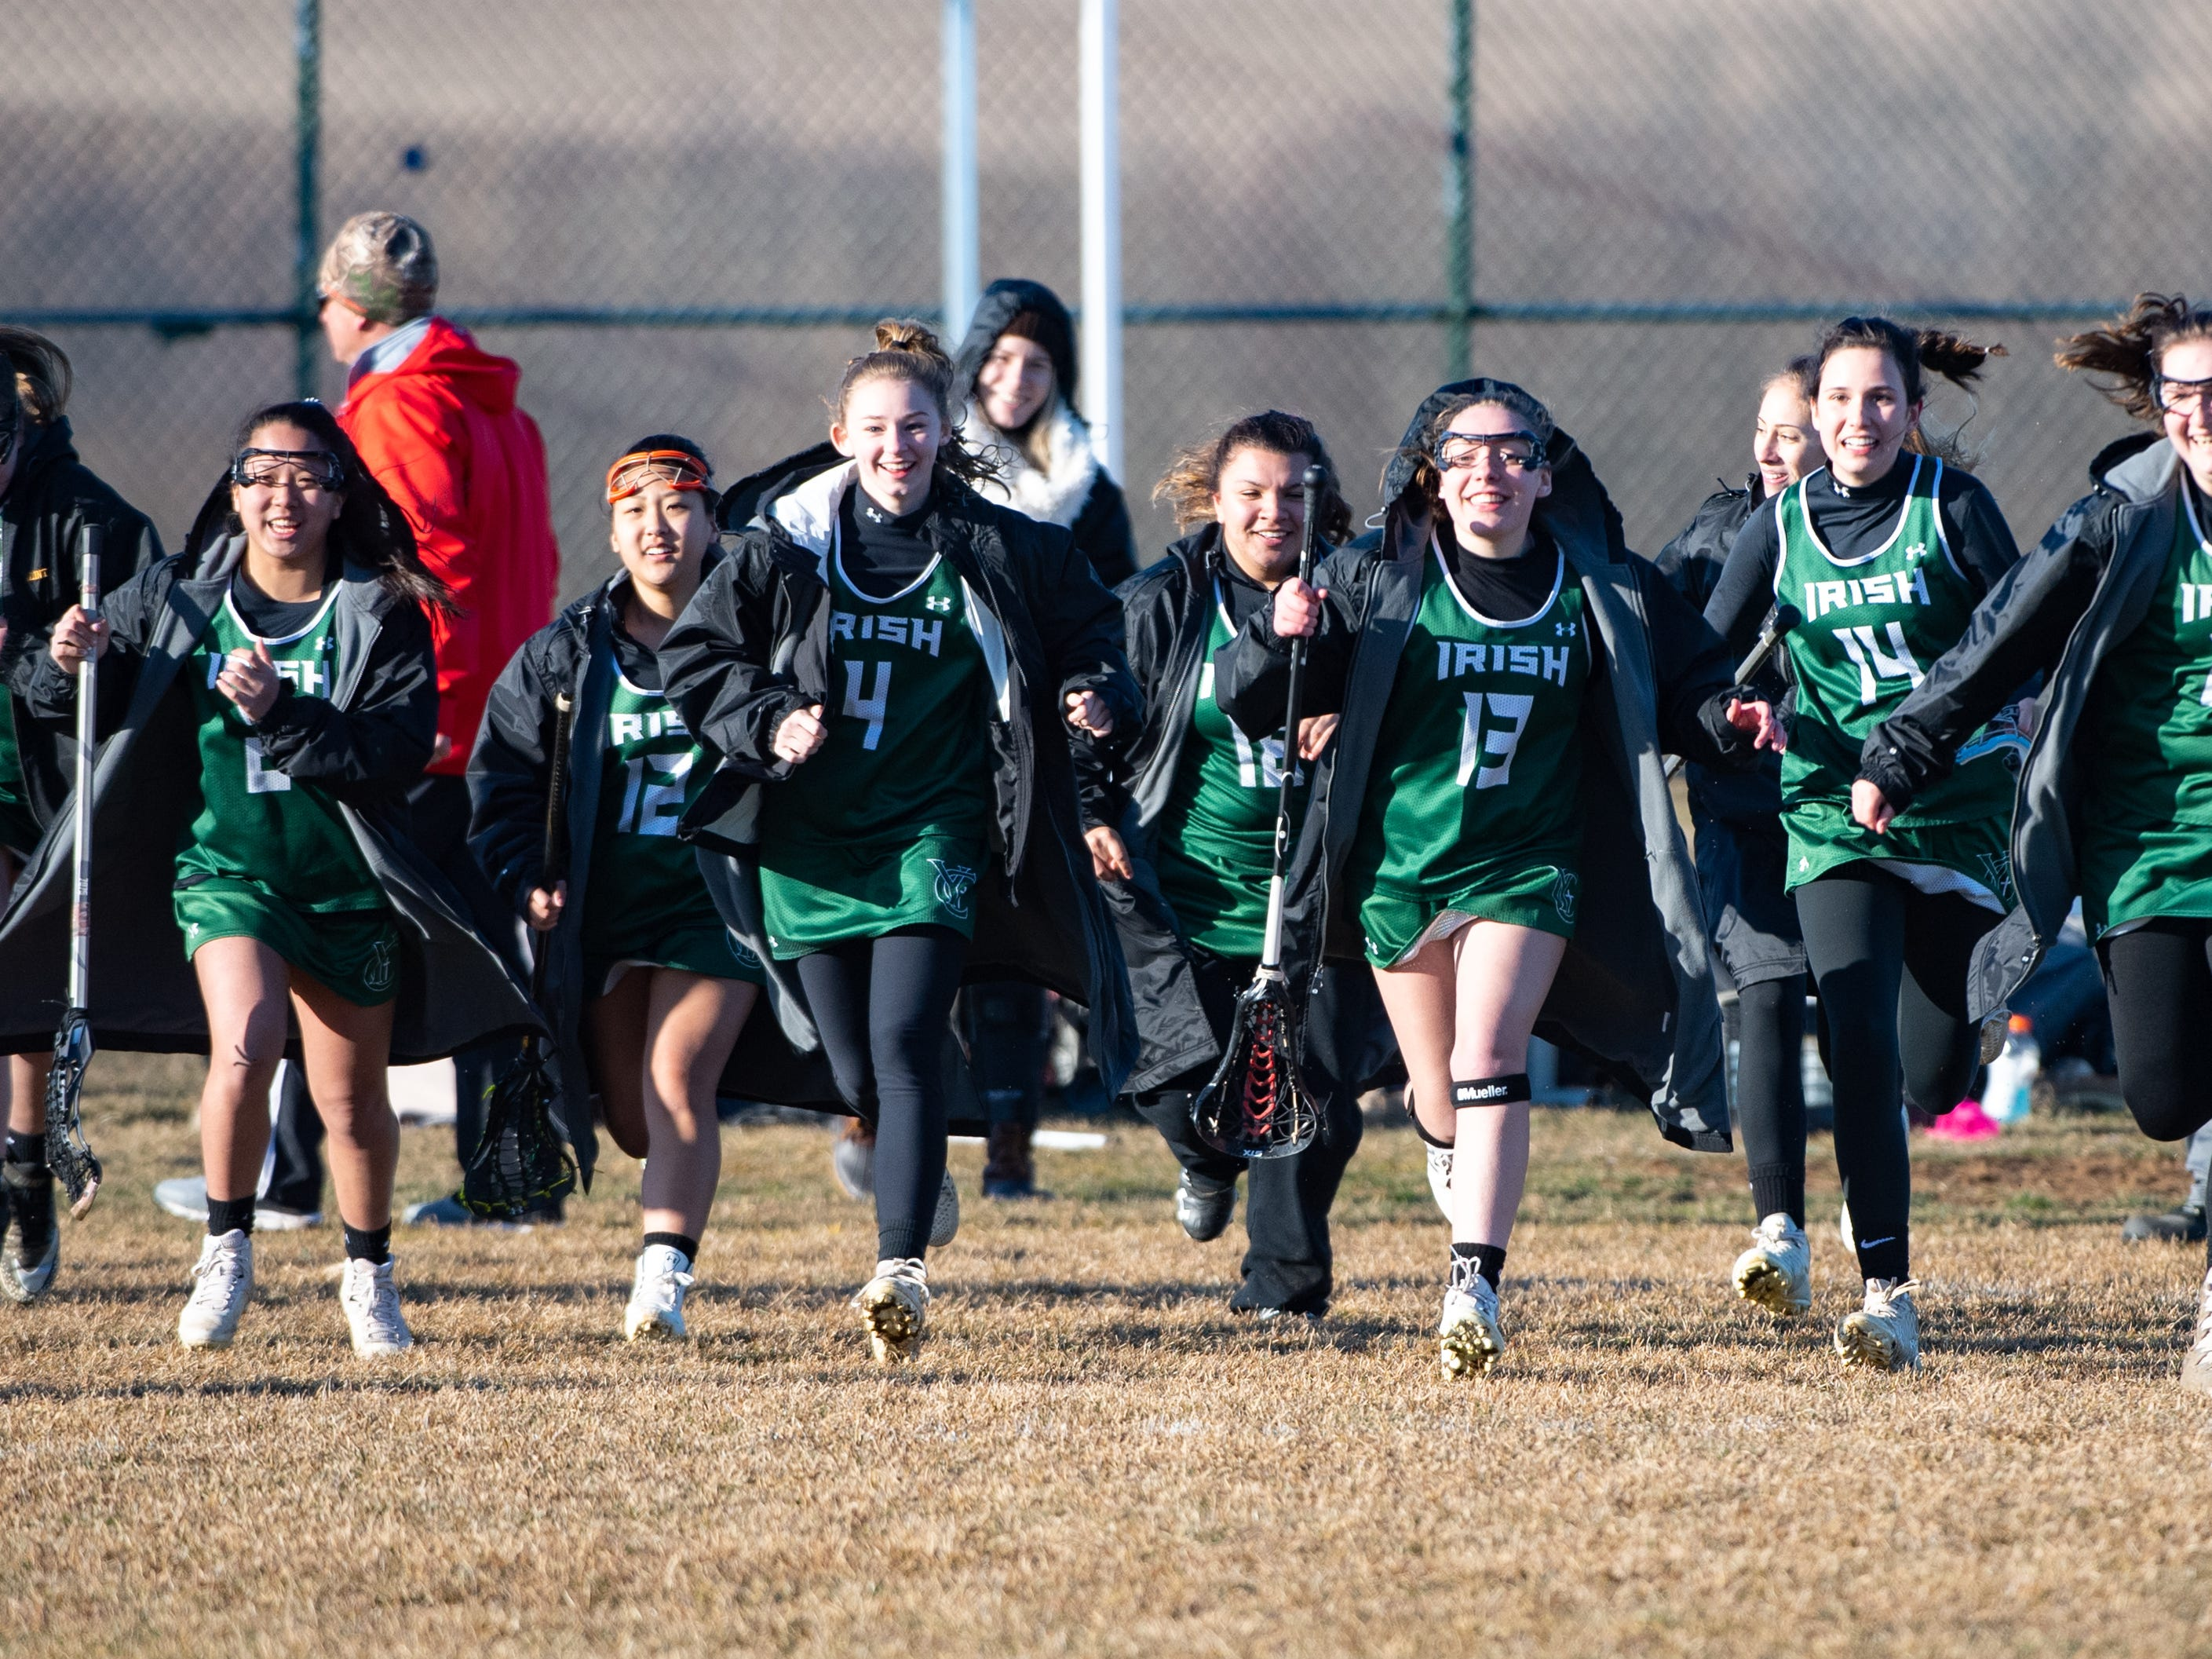 York Catholic rushes the field after defeating Kennard-Dale 10 to 9 in the girls' lacrosse game, March 26, 2019.